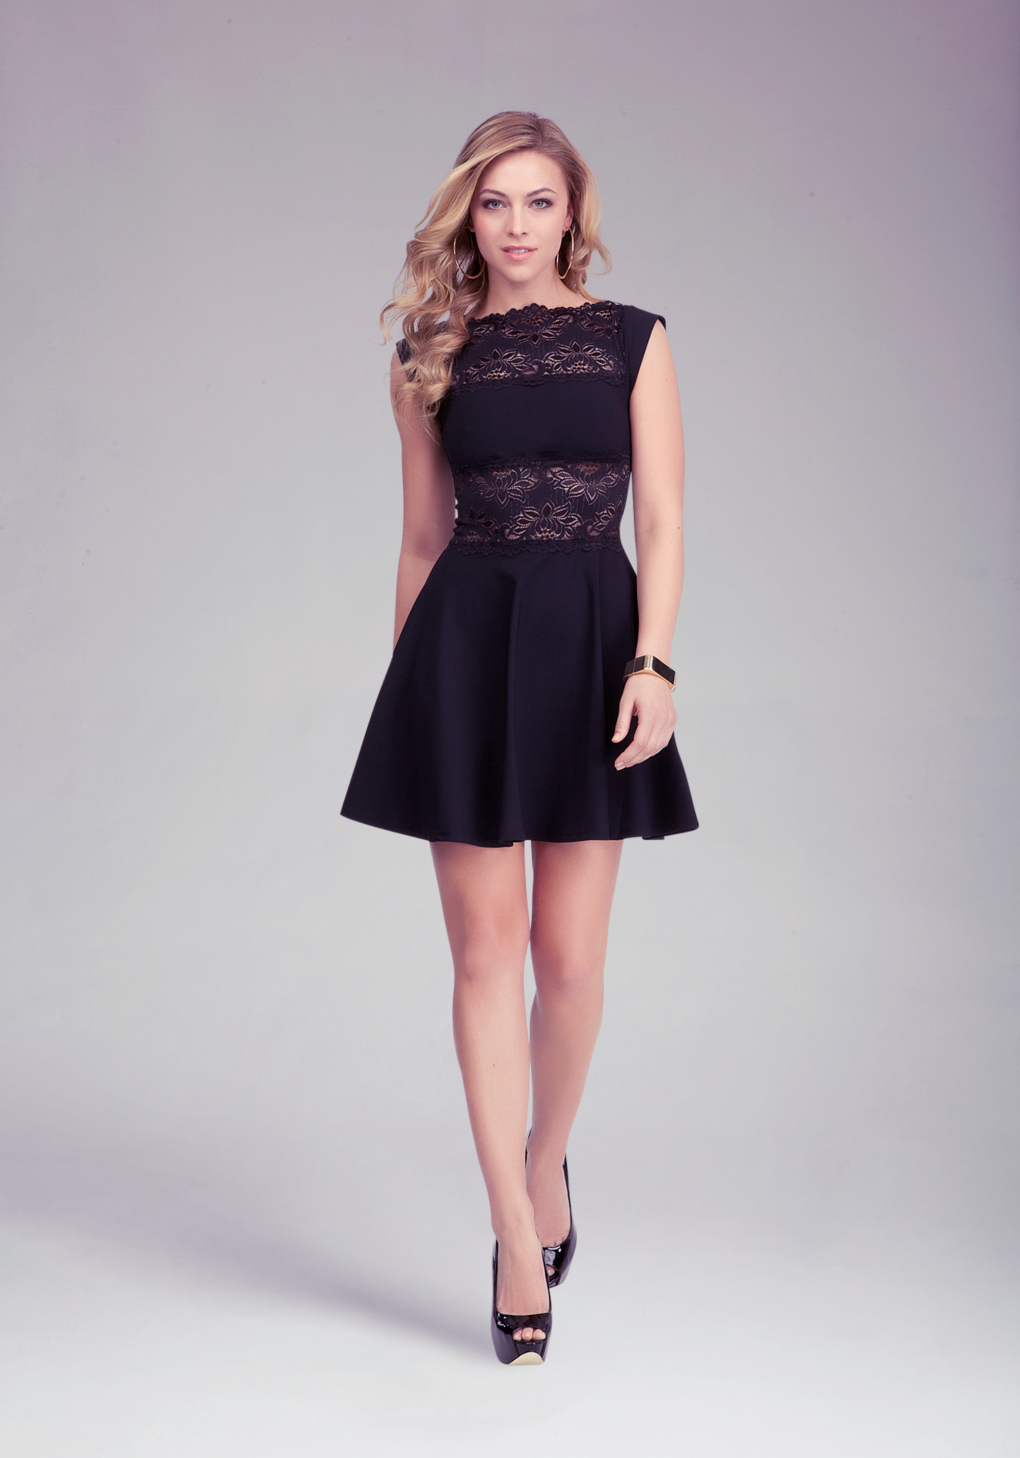 Lyst Bebe Lace Panel Midriff Dress In Black